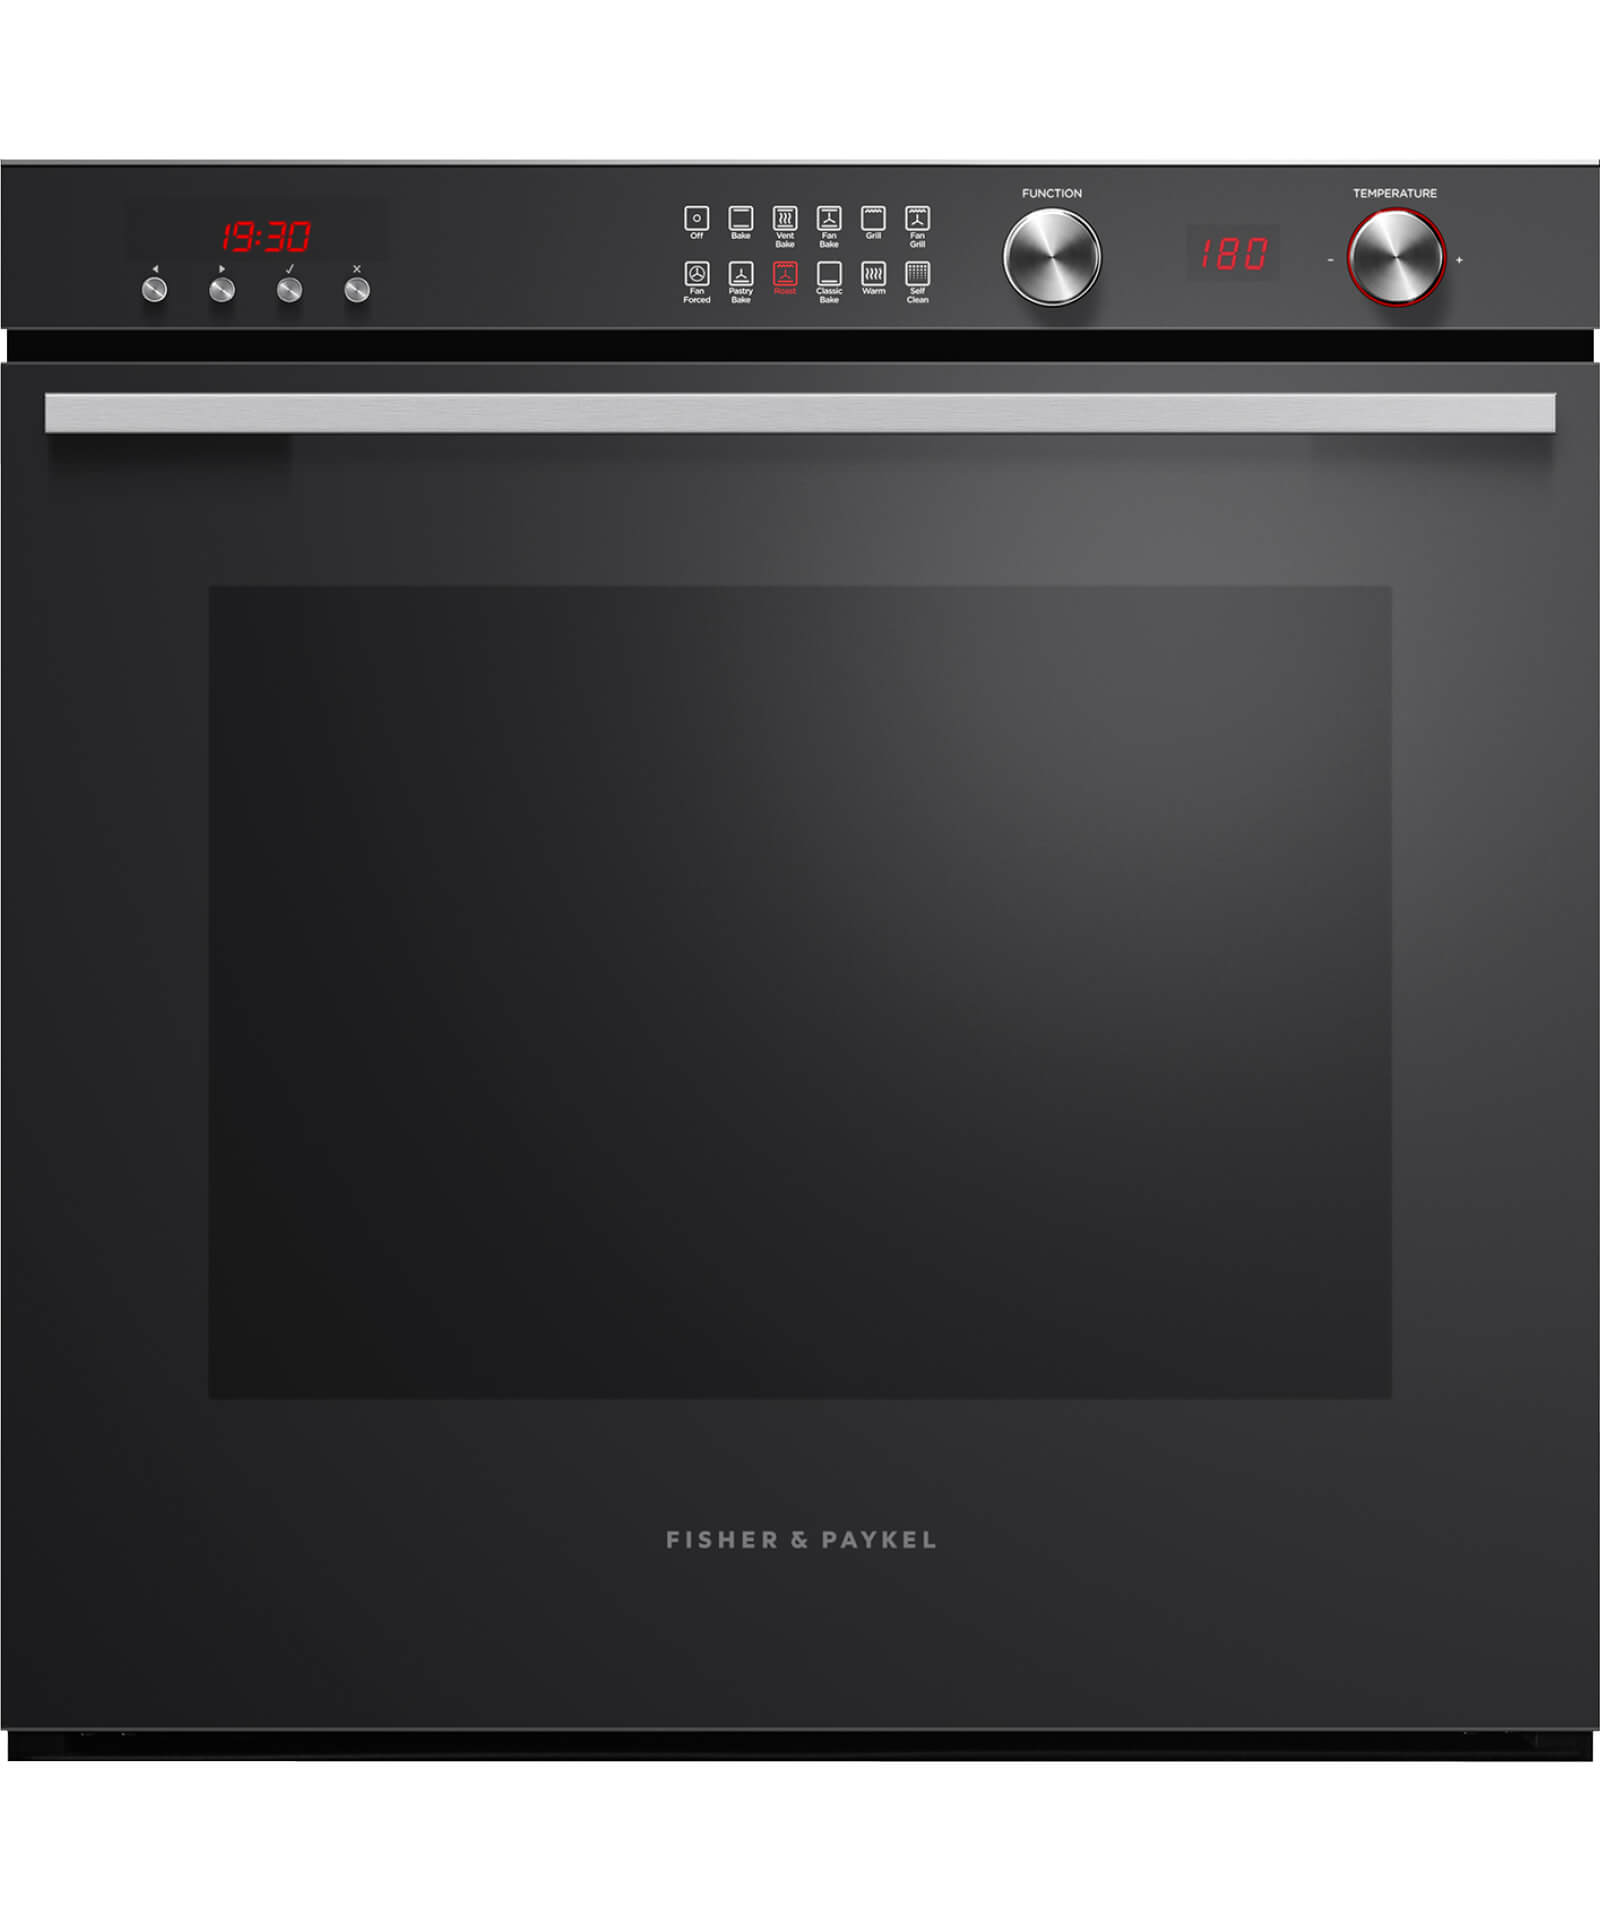 OB60SL11DEPB1 - 60cm 11 Function Pyrolytic Built-in Oven - 90L Gross Capacity - 81507